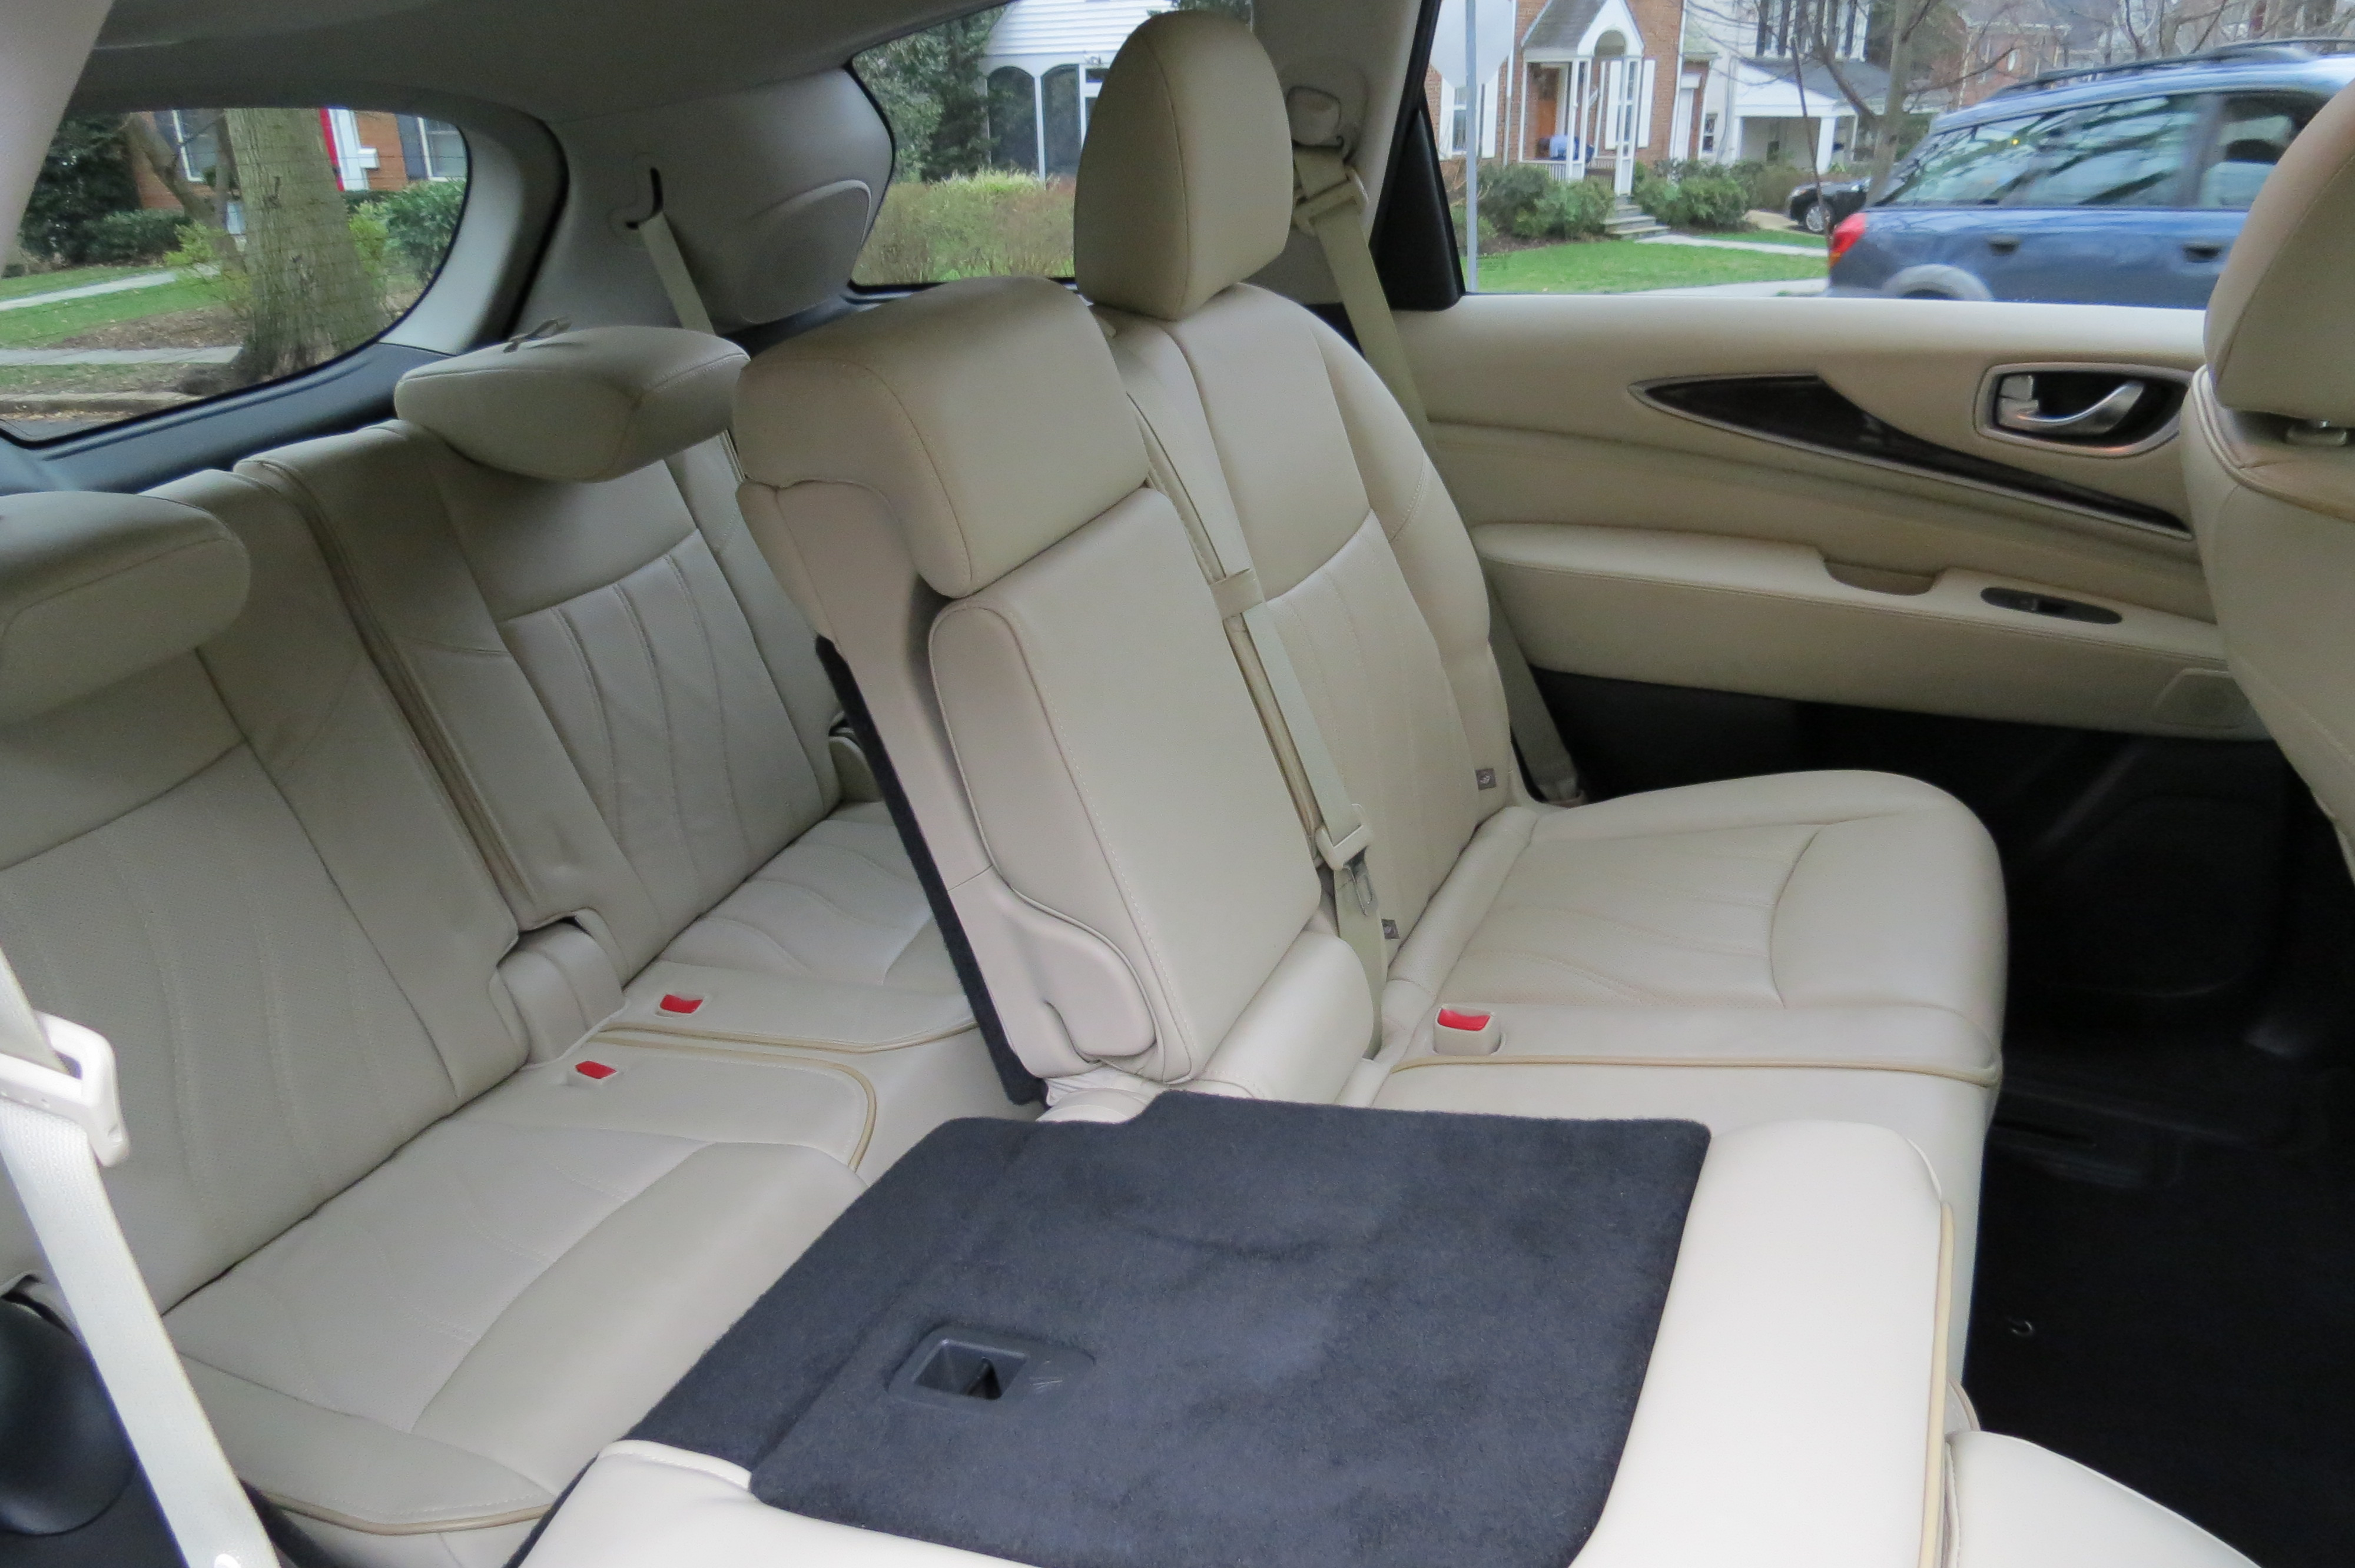 2nd & 3rd row rear seats fold down to extend the cargo area.